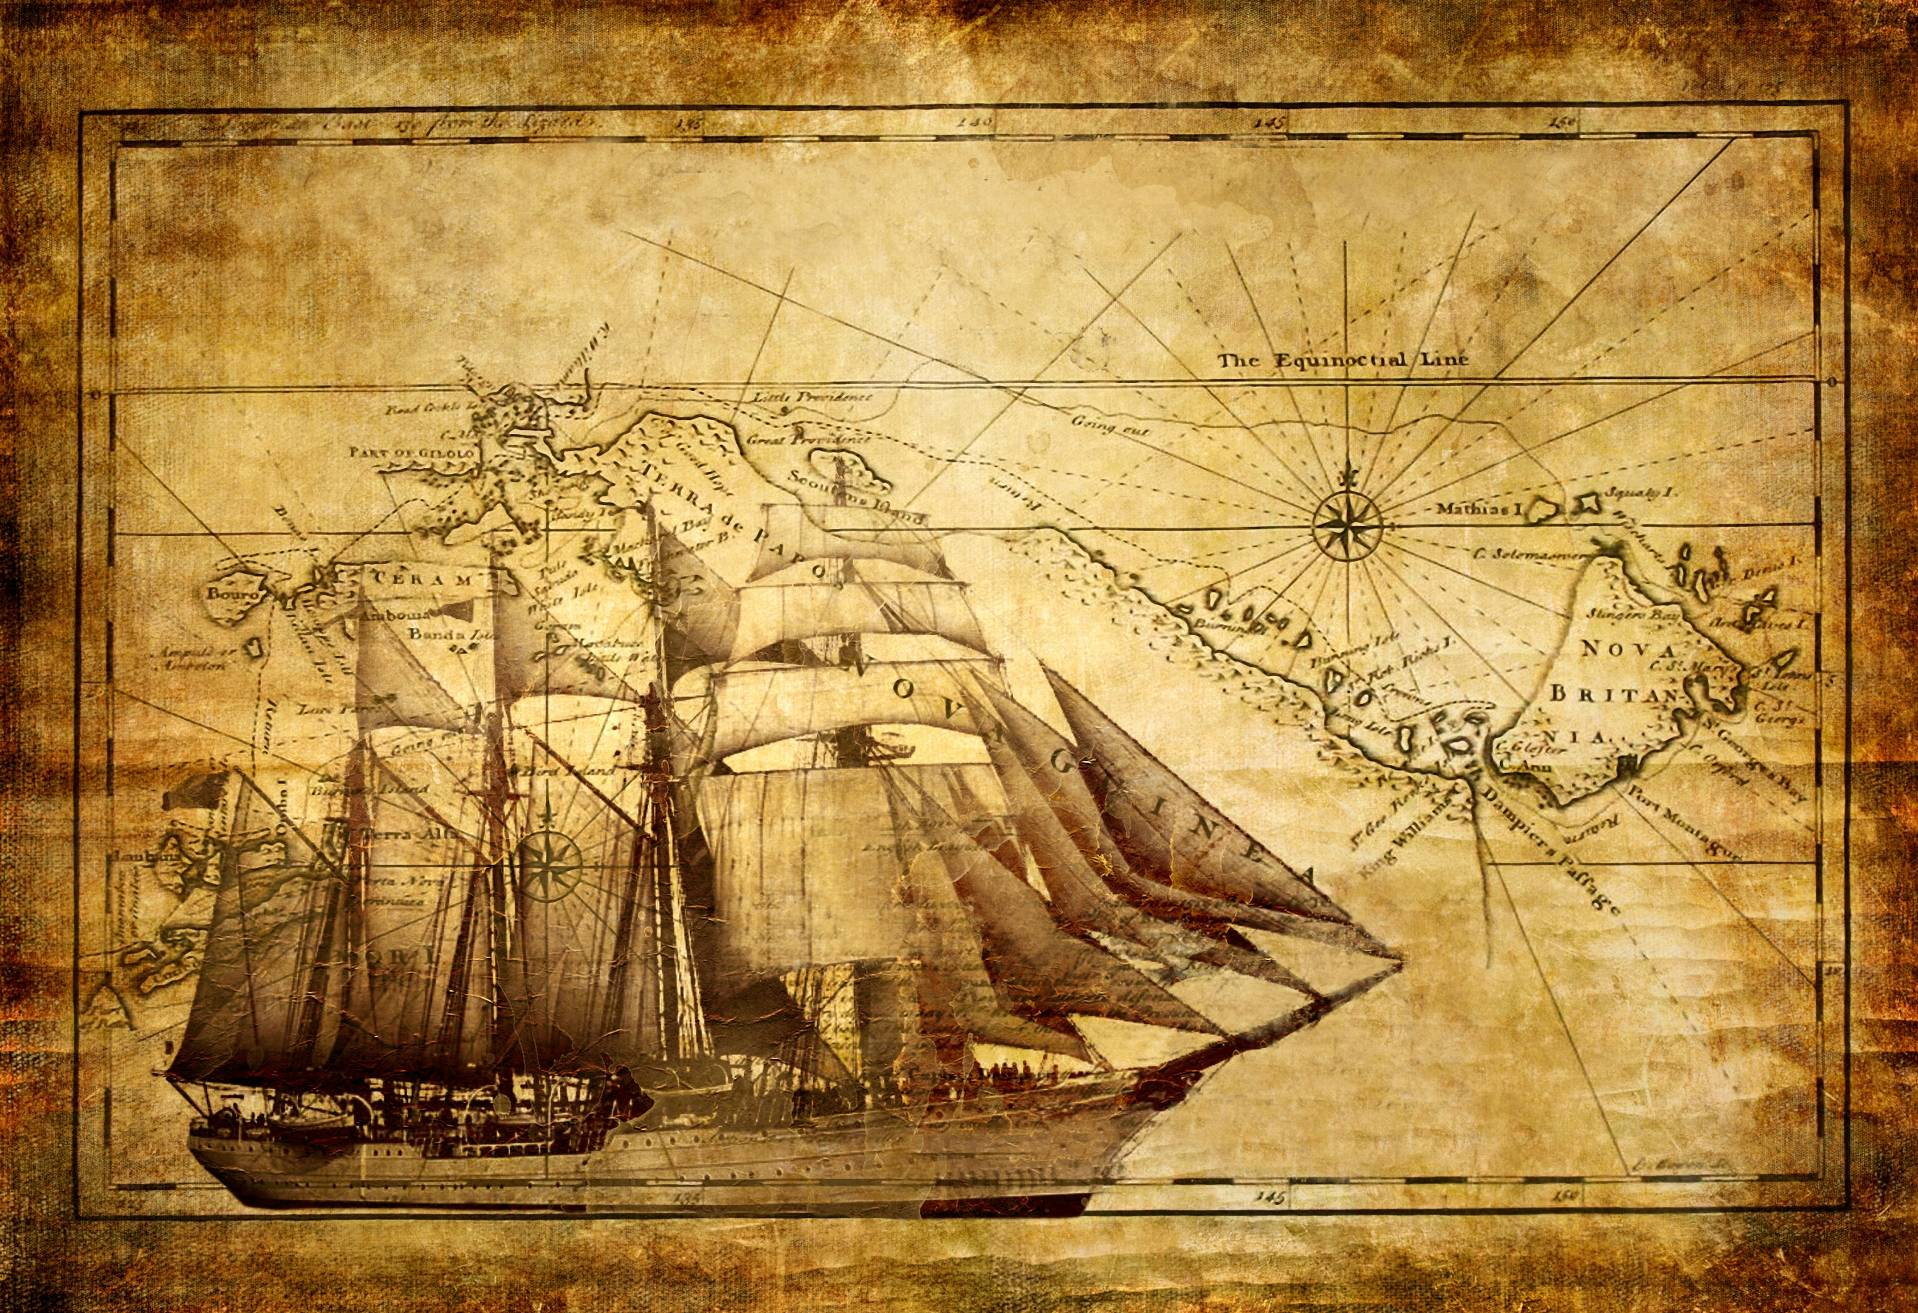 Antique world map wallpaper sf wallpaper vintage map wallpapers wallpaper cave gumiabroncs Gallery